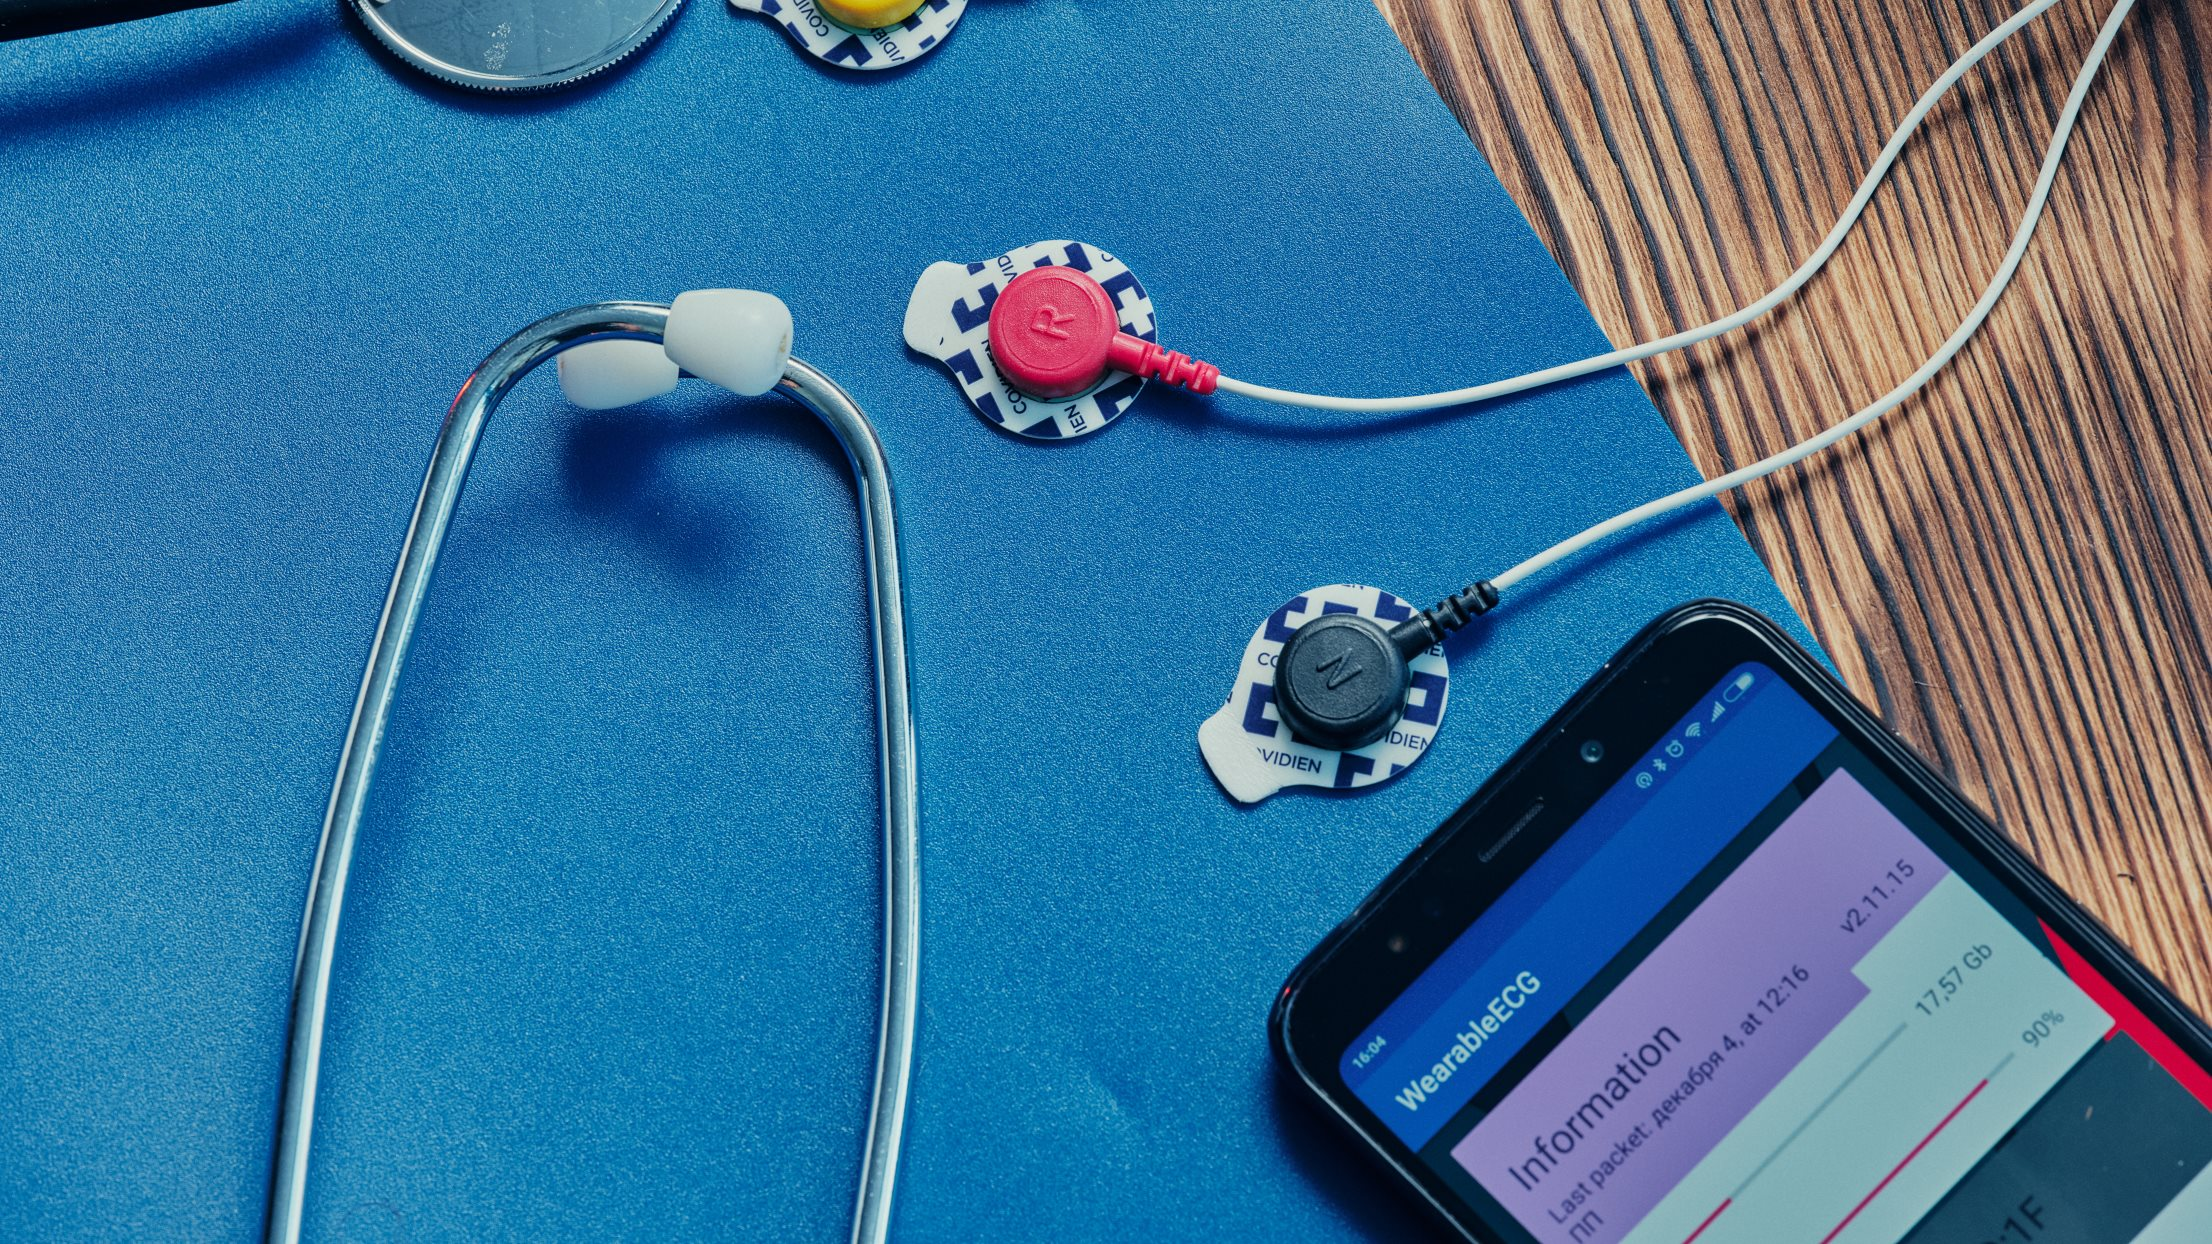 ECG electrodes and the Android app